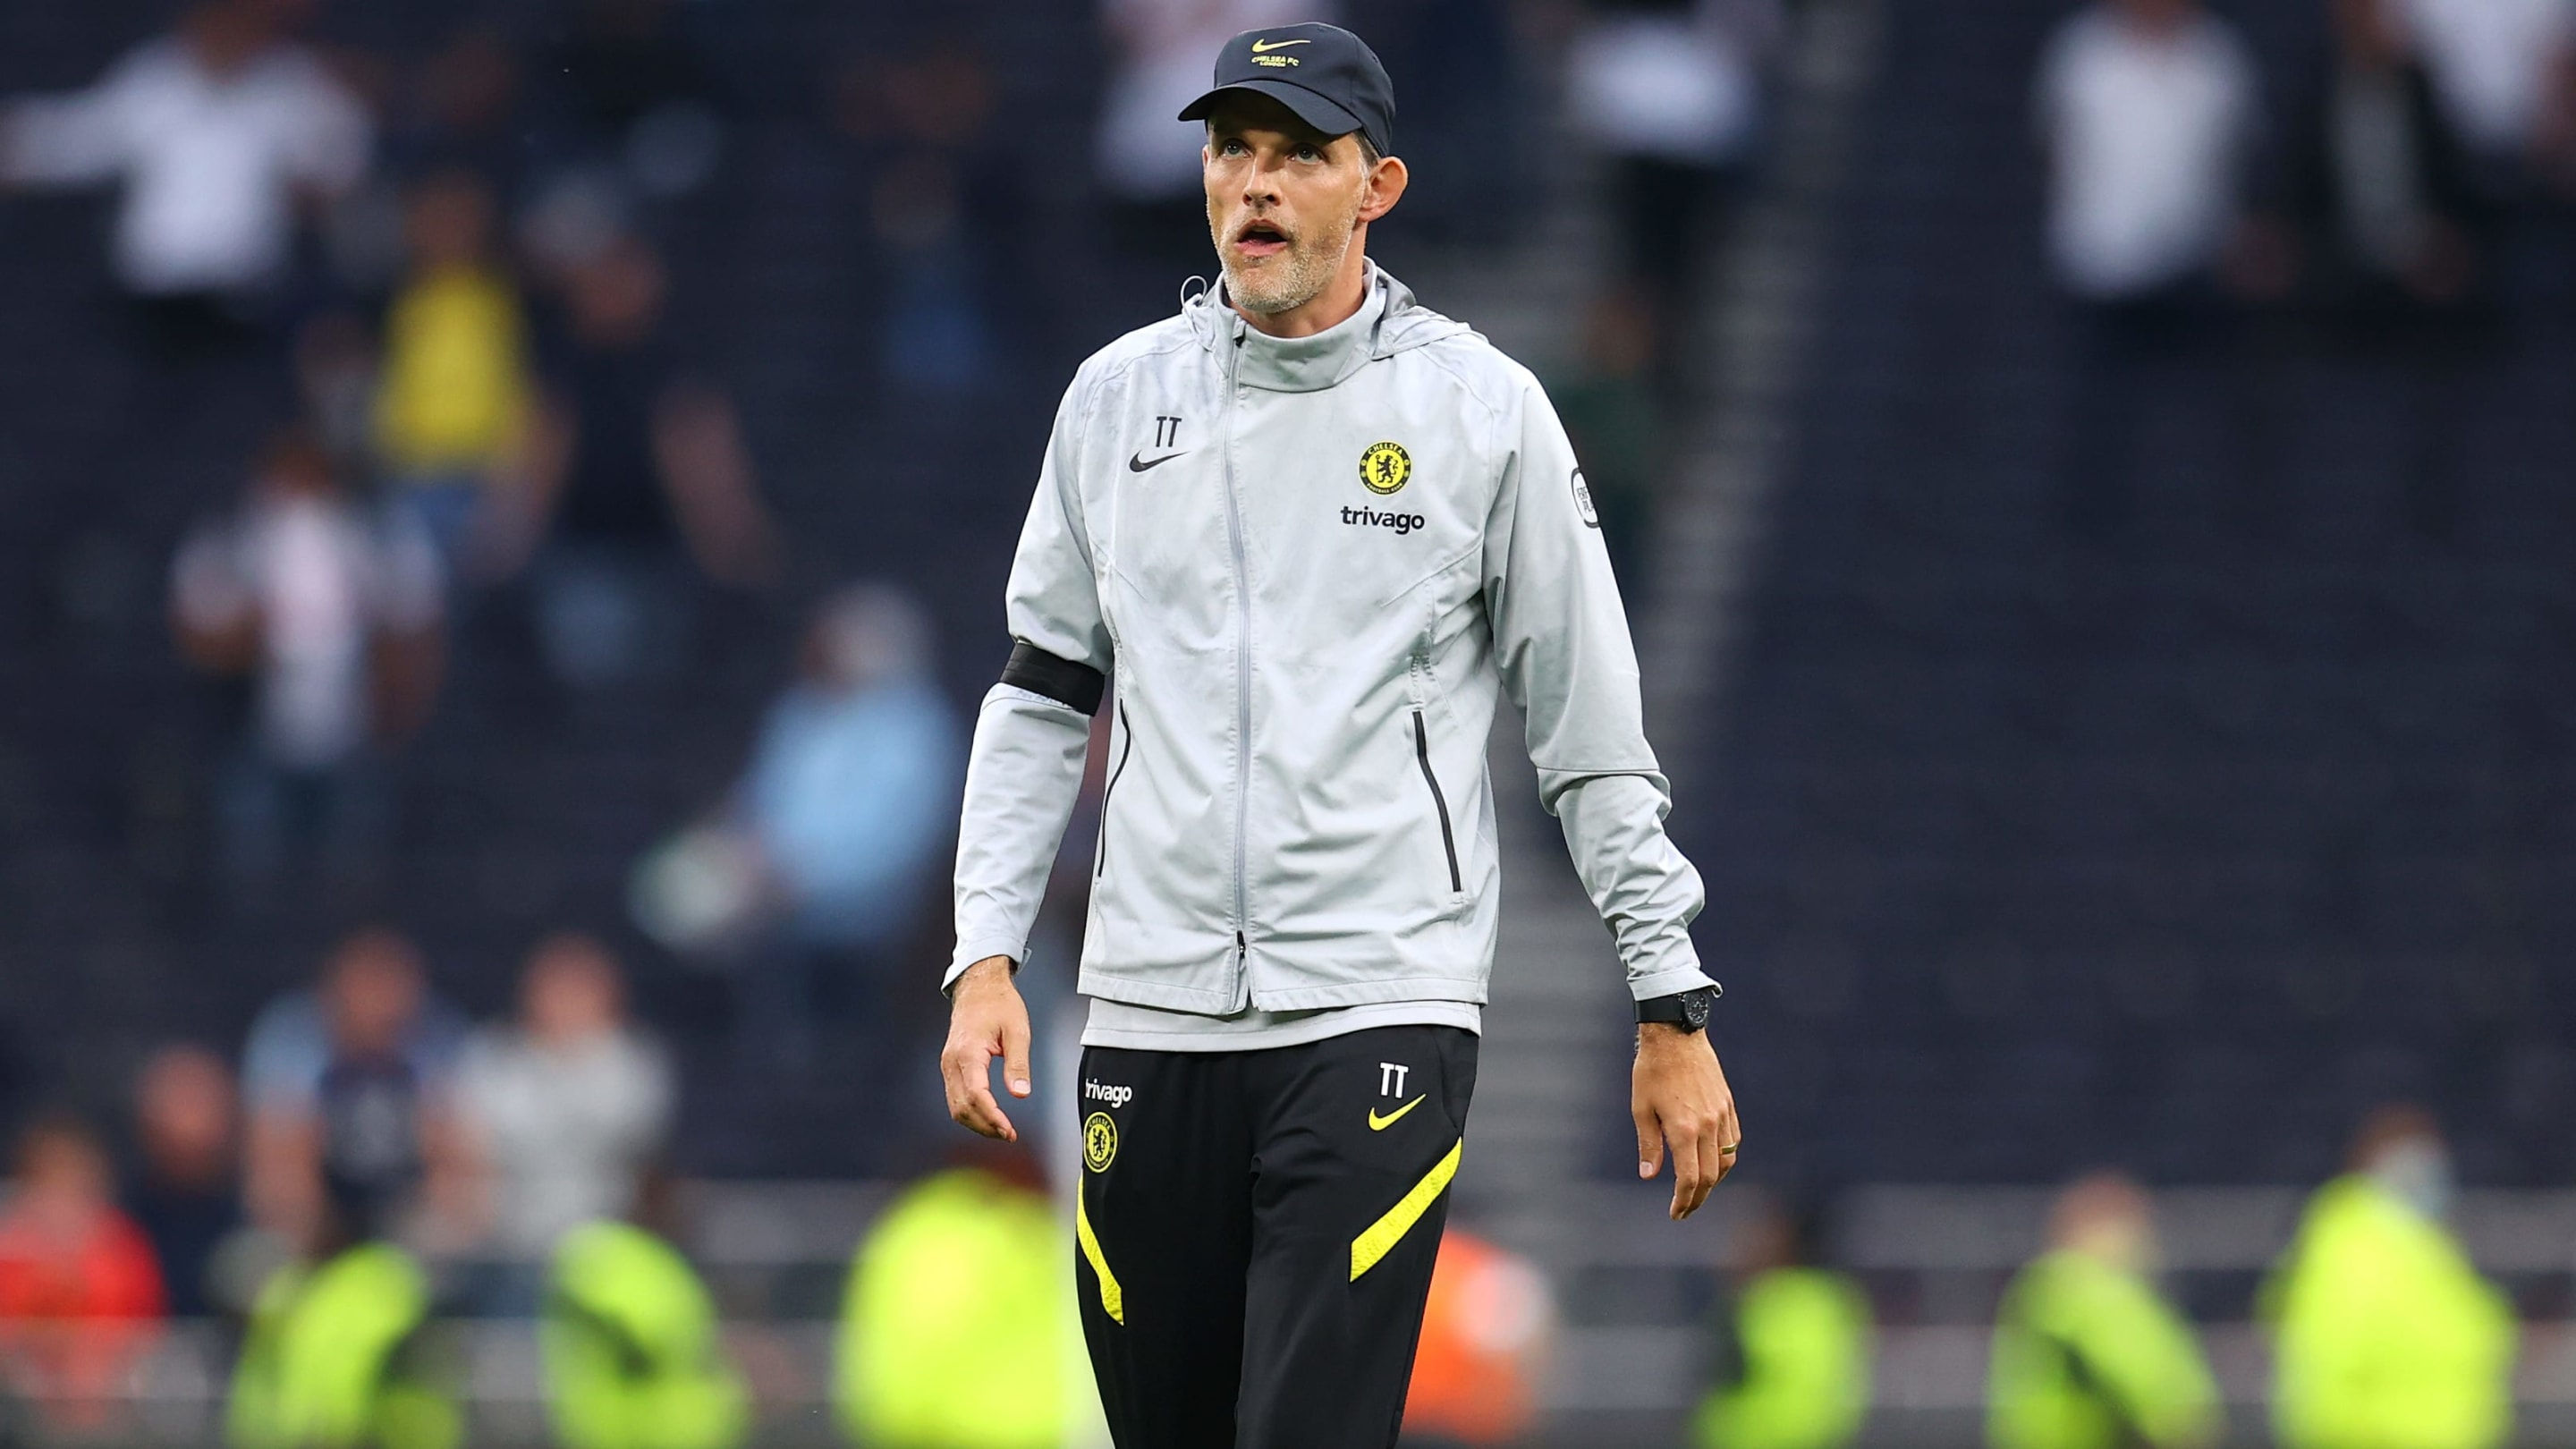 Thomas Tuchel admits Chelsea 'did not believe' in themselves against Man City